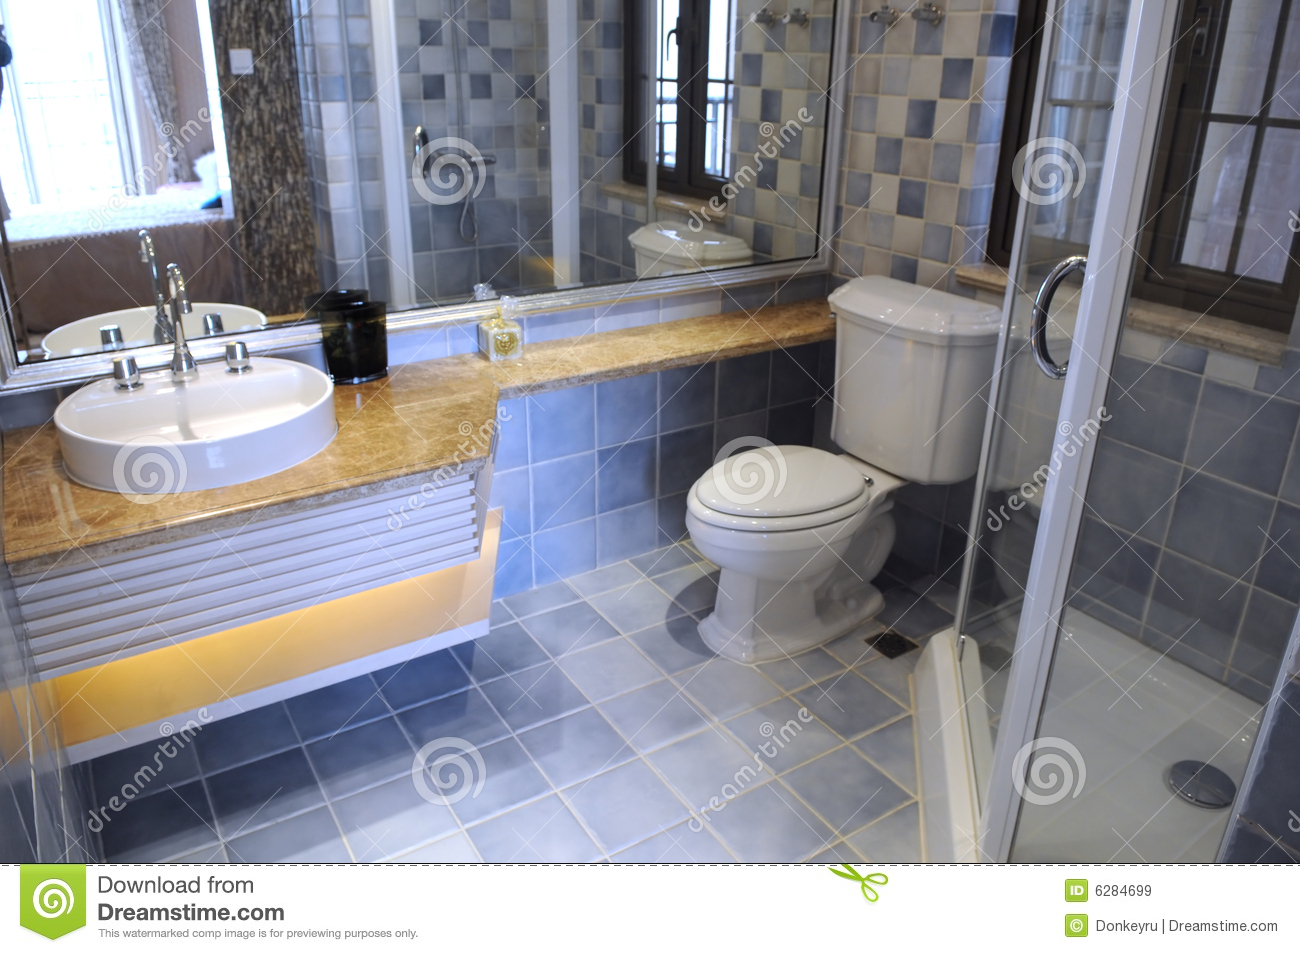 A Modern Family Toilet Royalty Free Stock Images Image 6284699